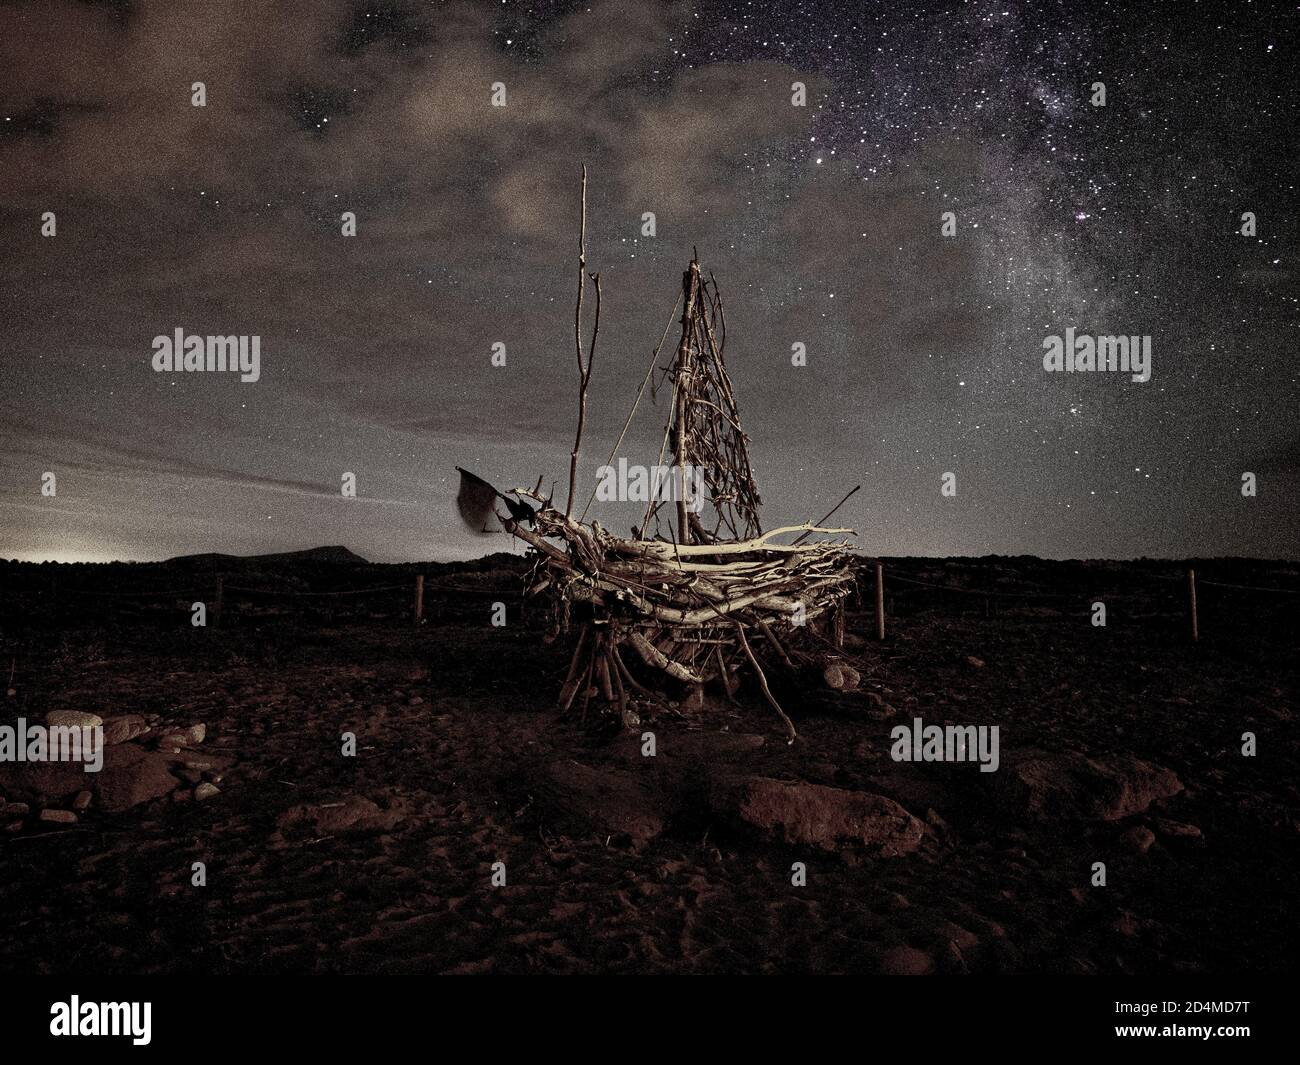 Night Sky Stars Boat High Resolution Stock Photography And Images Alamy